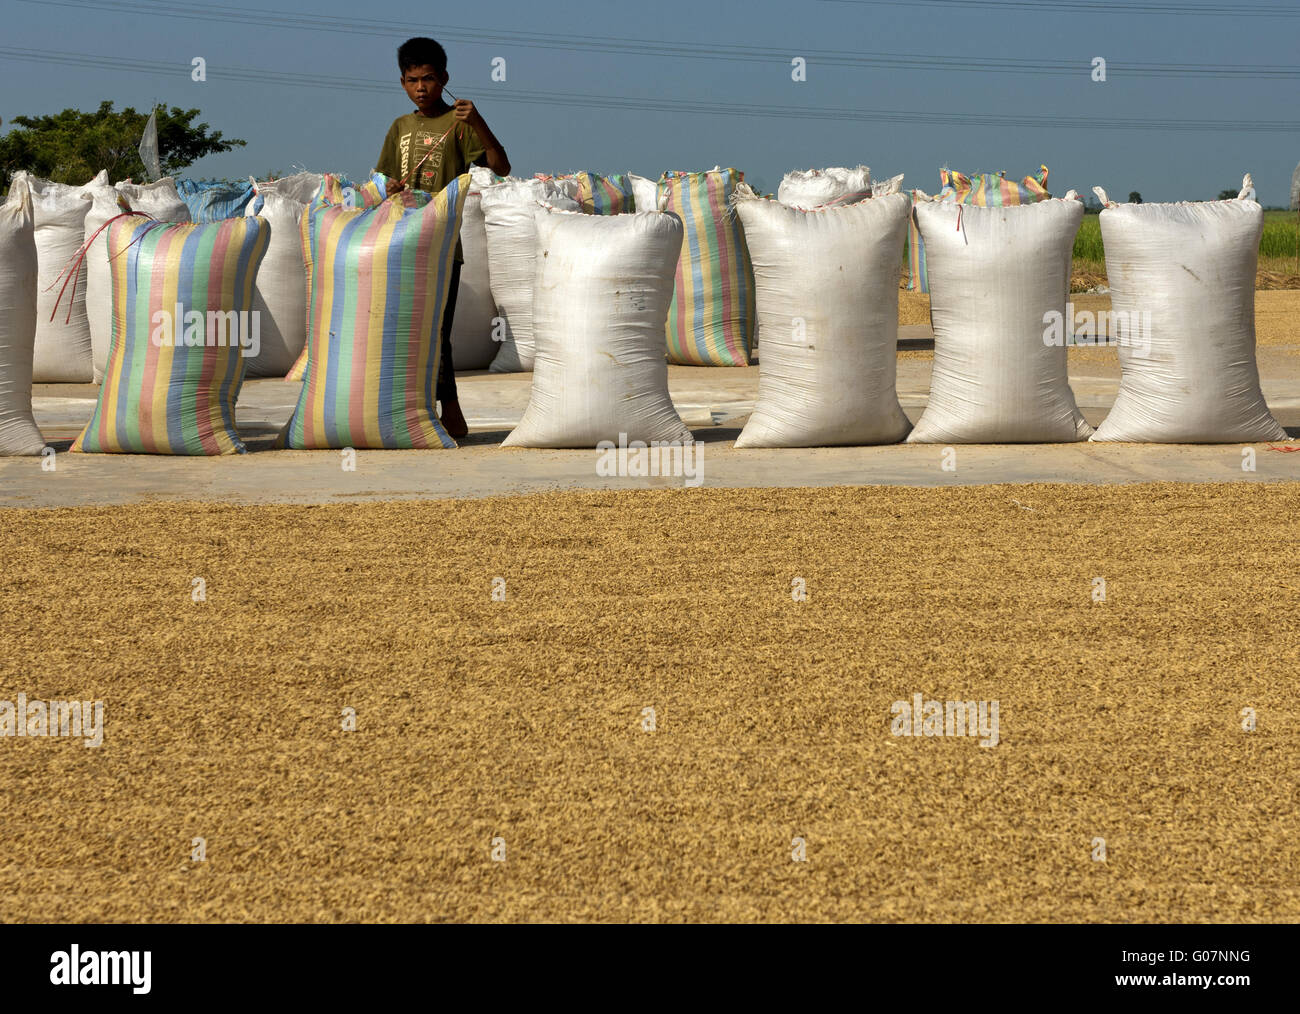 Drying of rice on the ground before re-packing it, Stock Photo